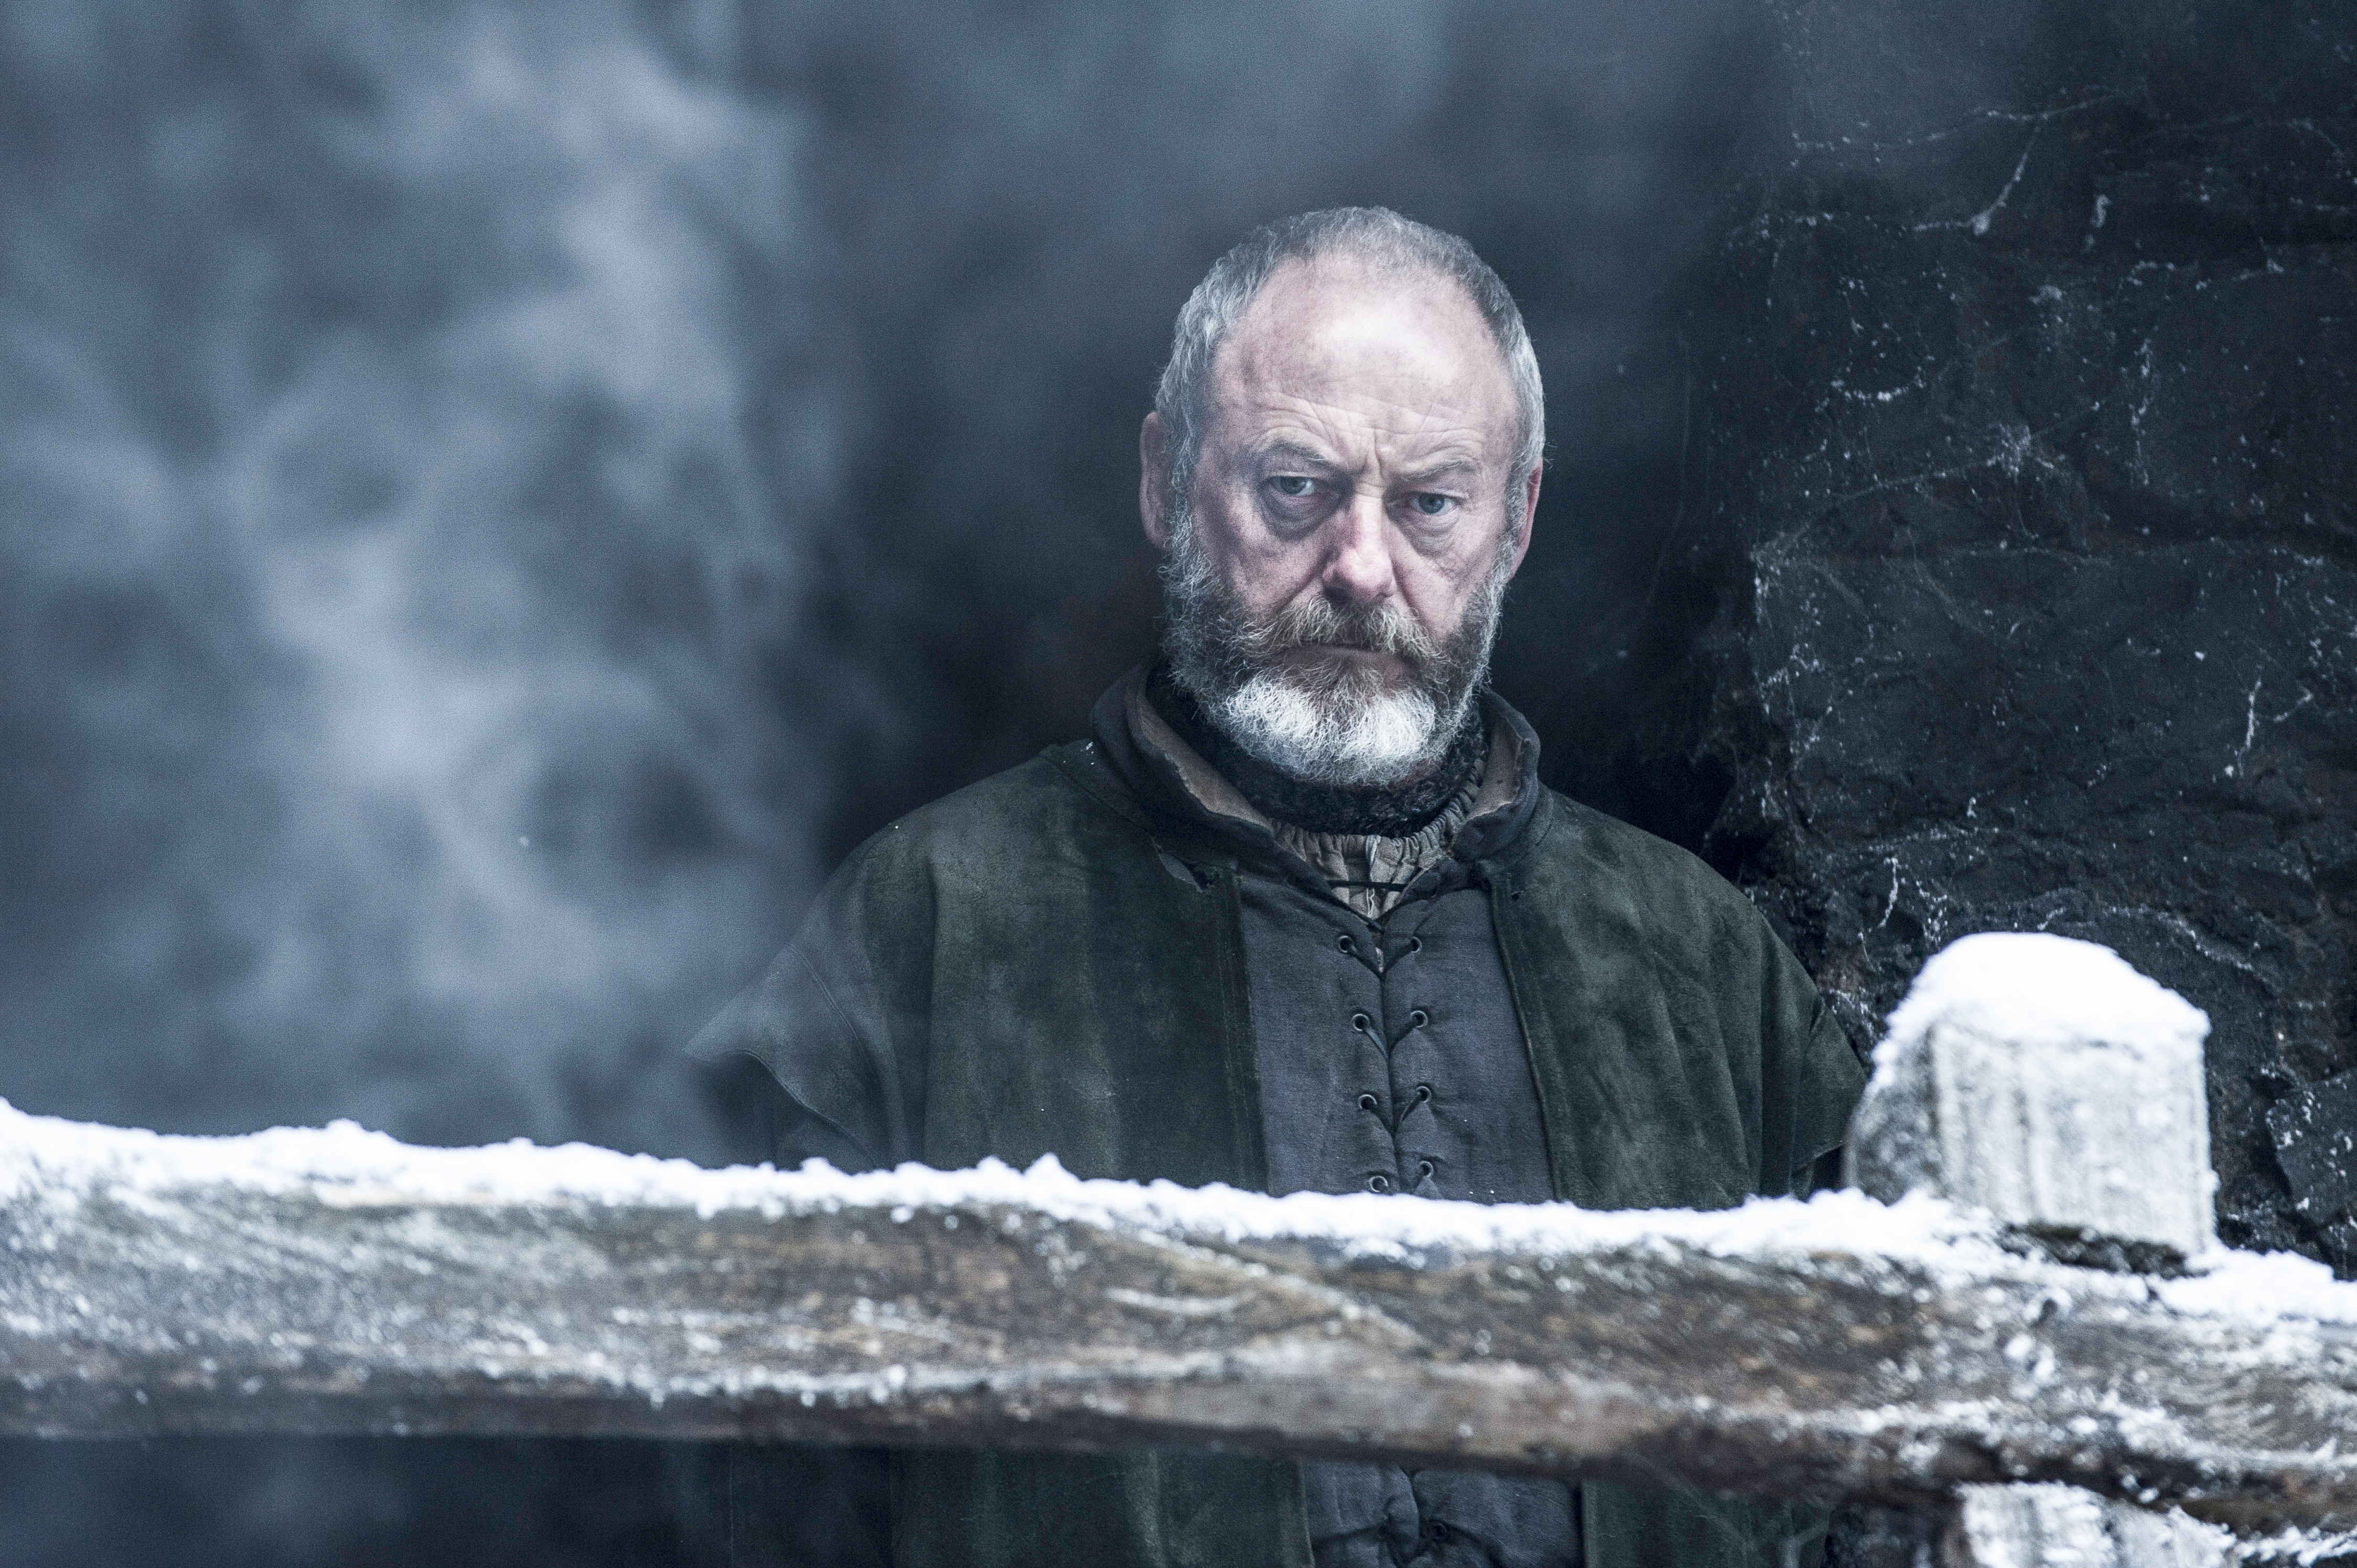 Liam Cunningham as Davos Seaworth. Photo by Helen Sloan/HBO